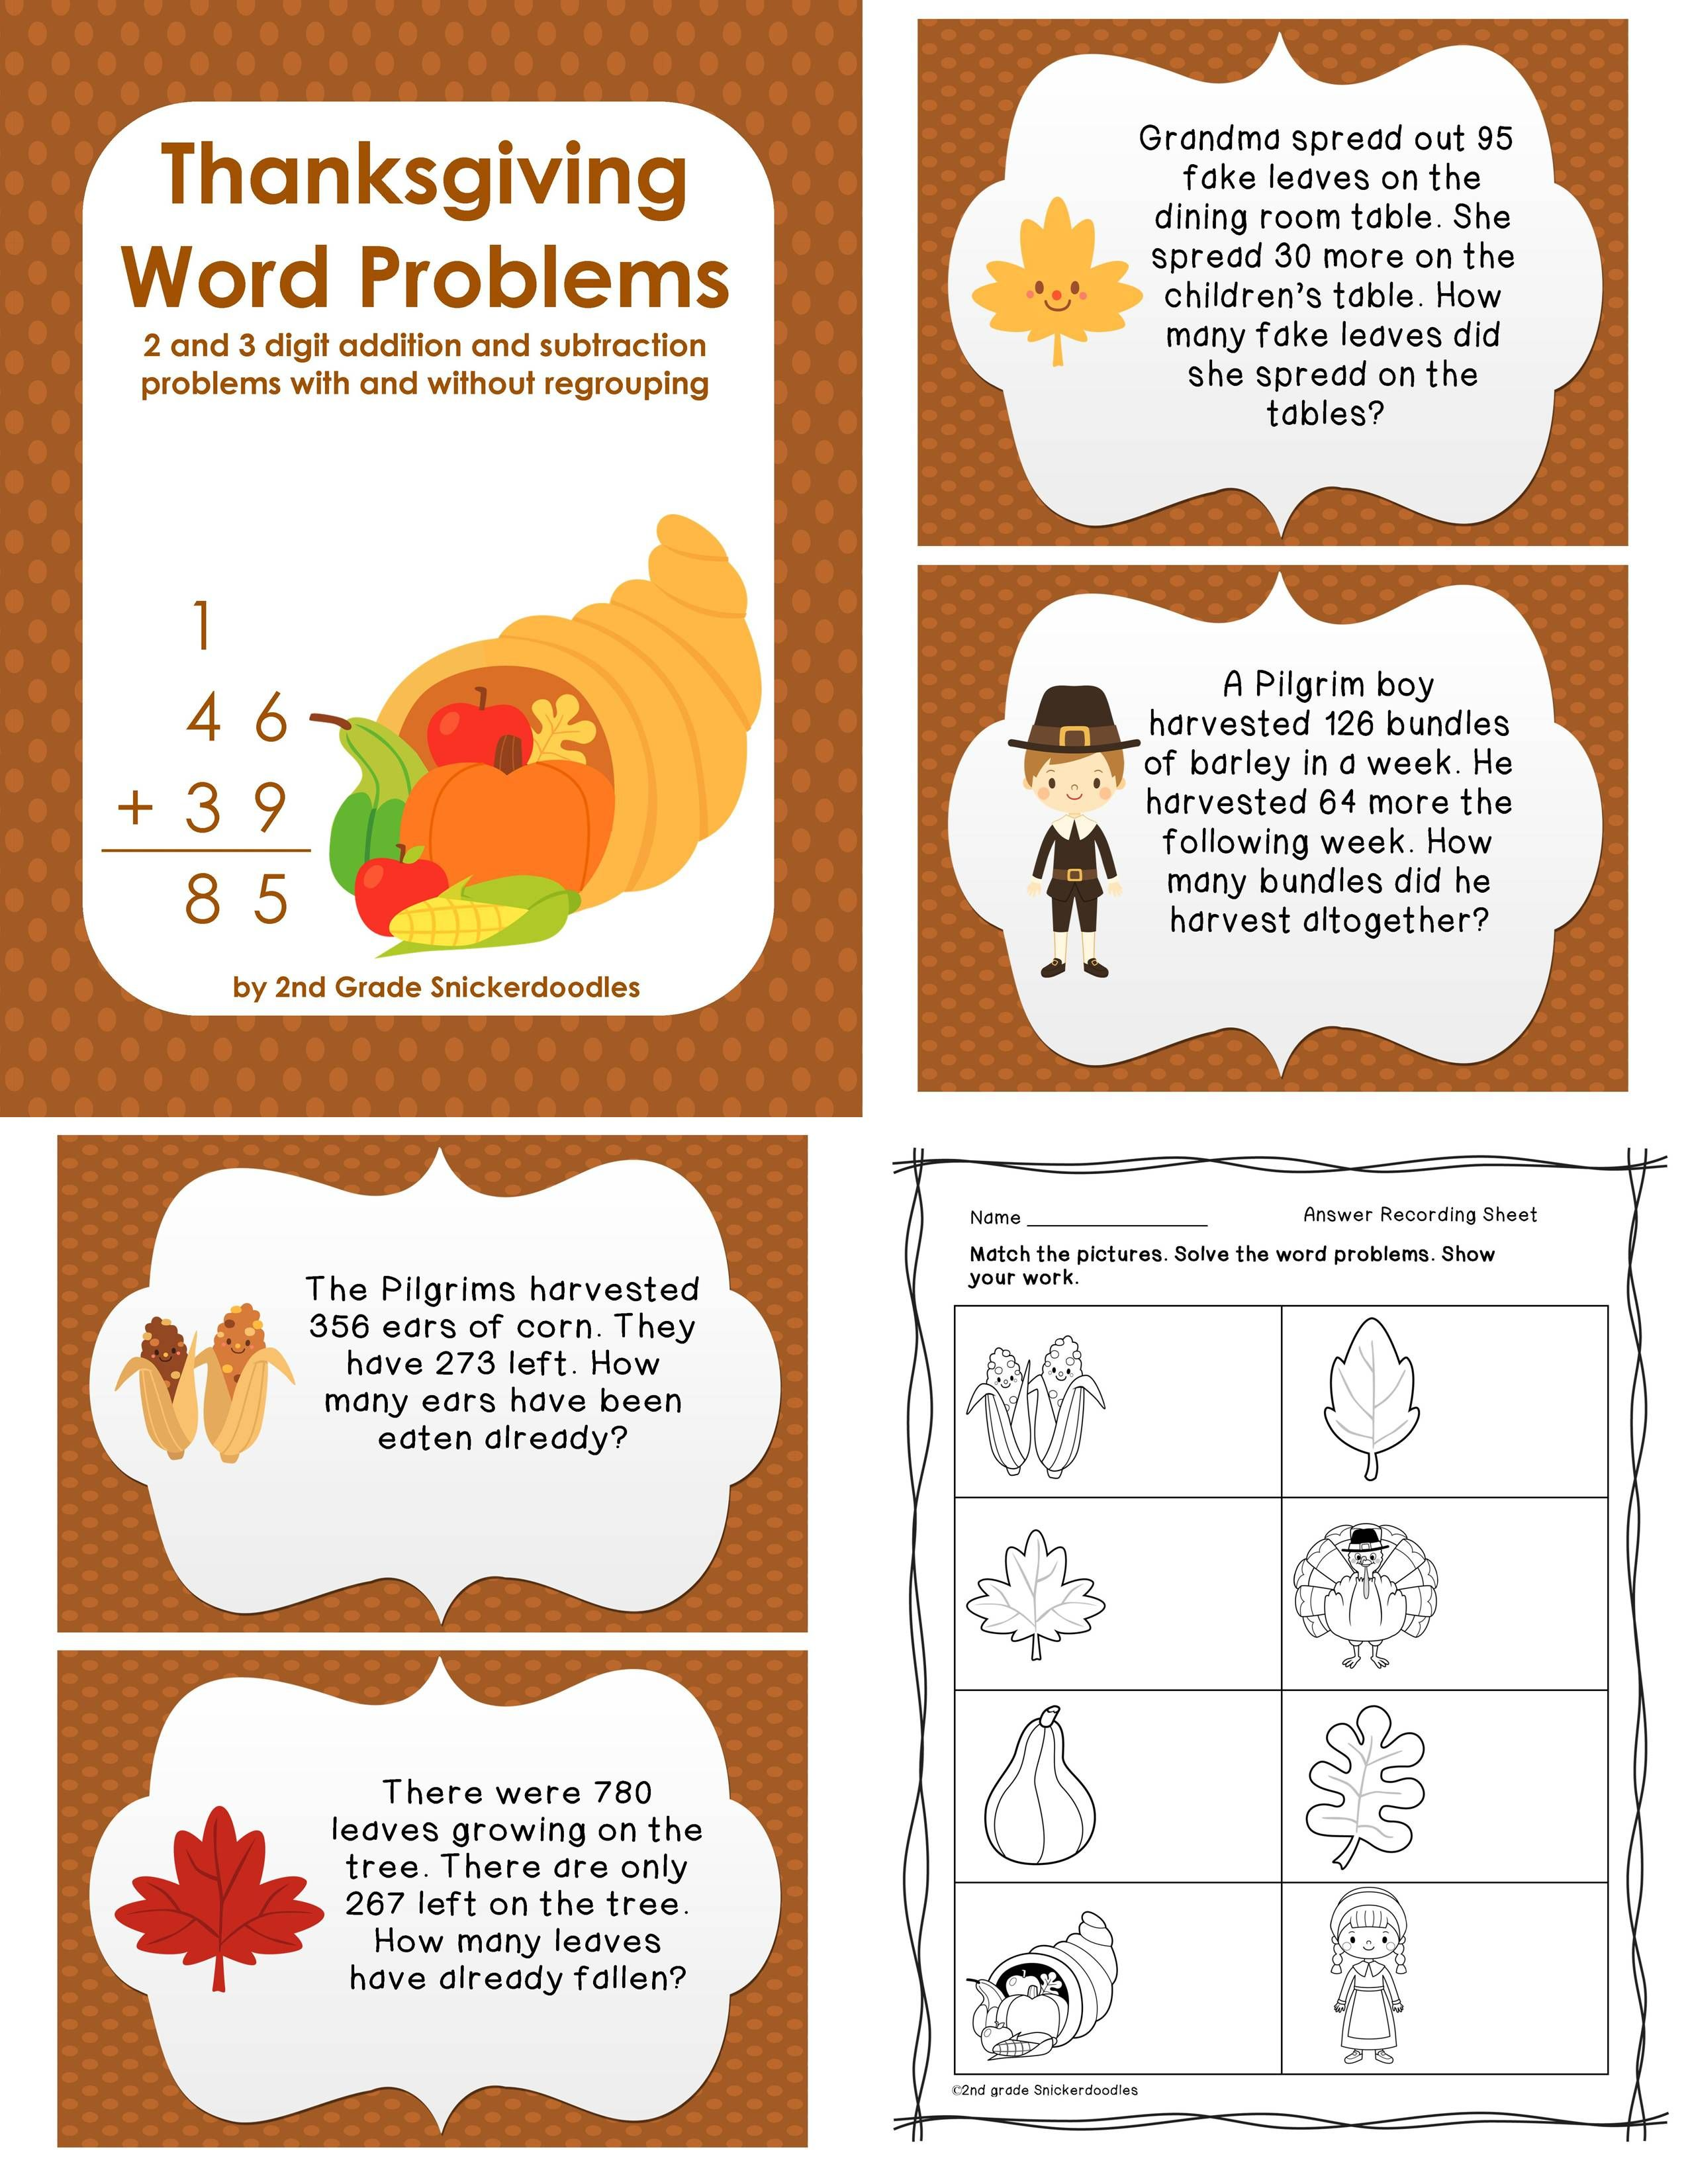 worksheet Double Digit Addition And Subtraction Word Problems thanksgiving word problems 2 and 3 digit additionsubtraction with without regrouping by